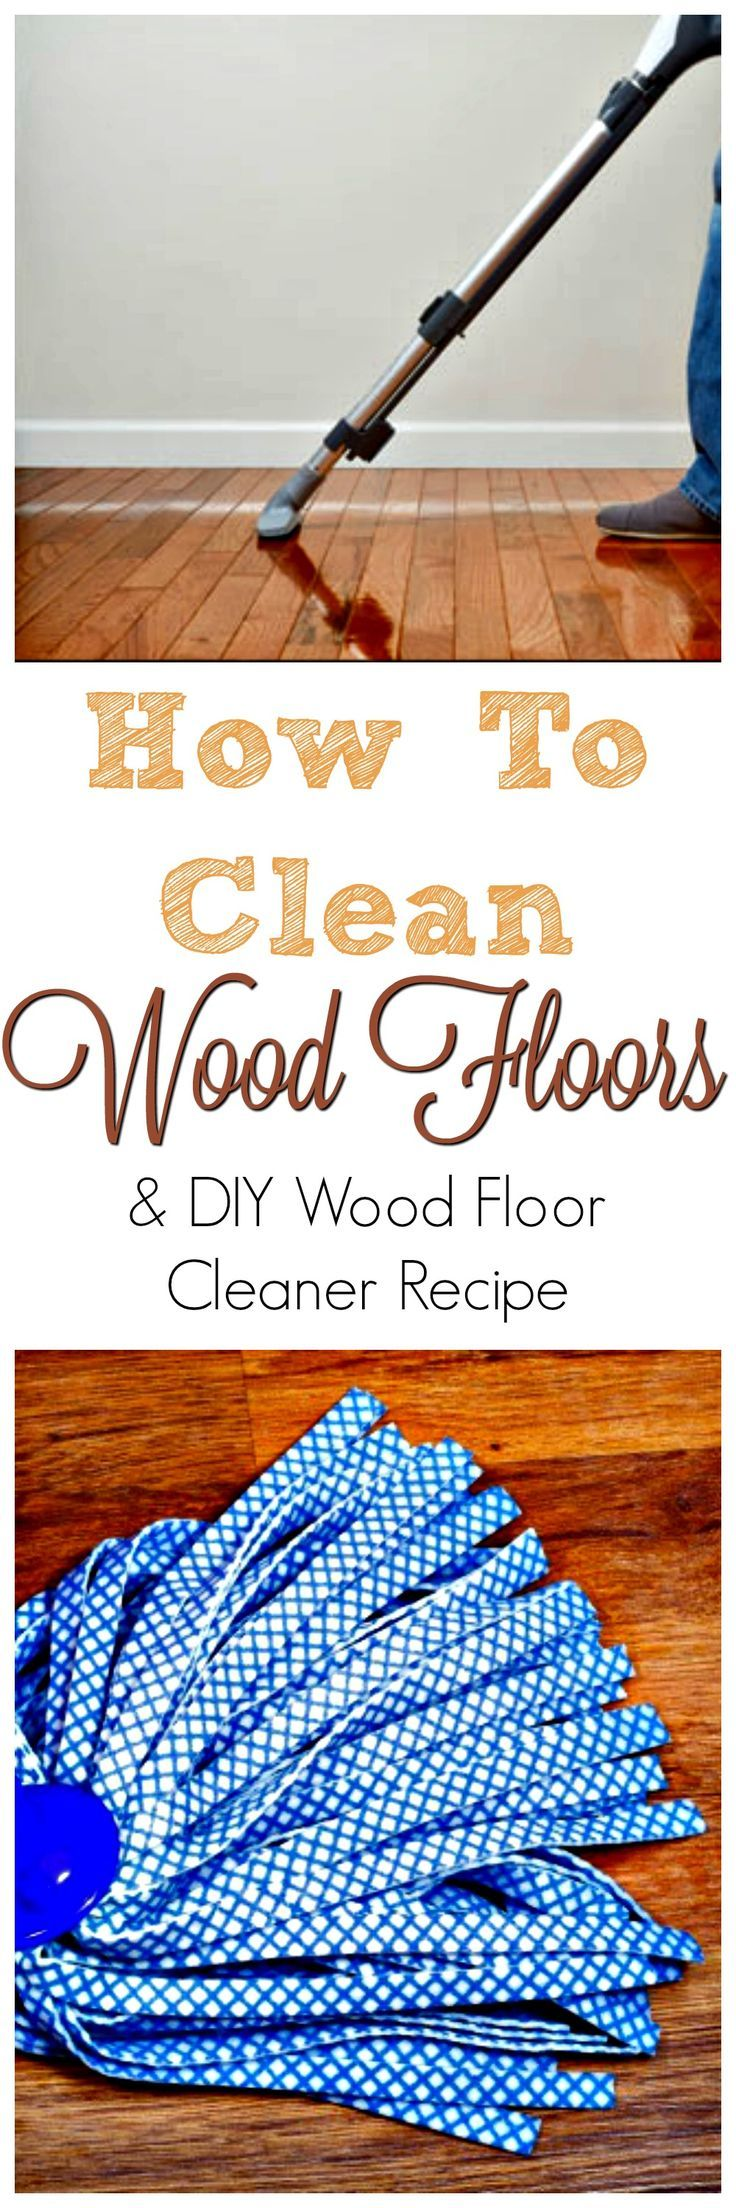 Gleaming wood floors add significant value to your home and look gorgeous. Here's how to clean them properly, including a DIY wood floor cleaning mix.